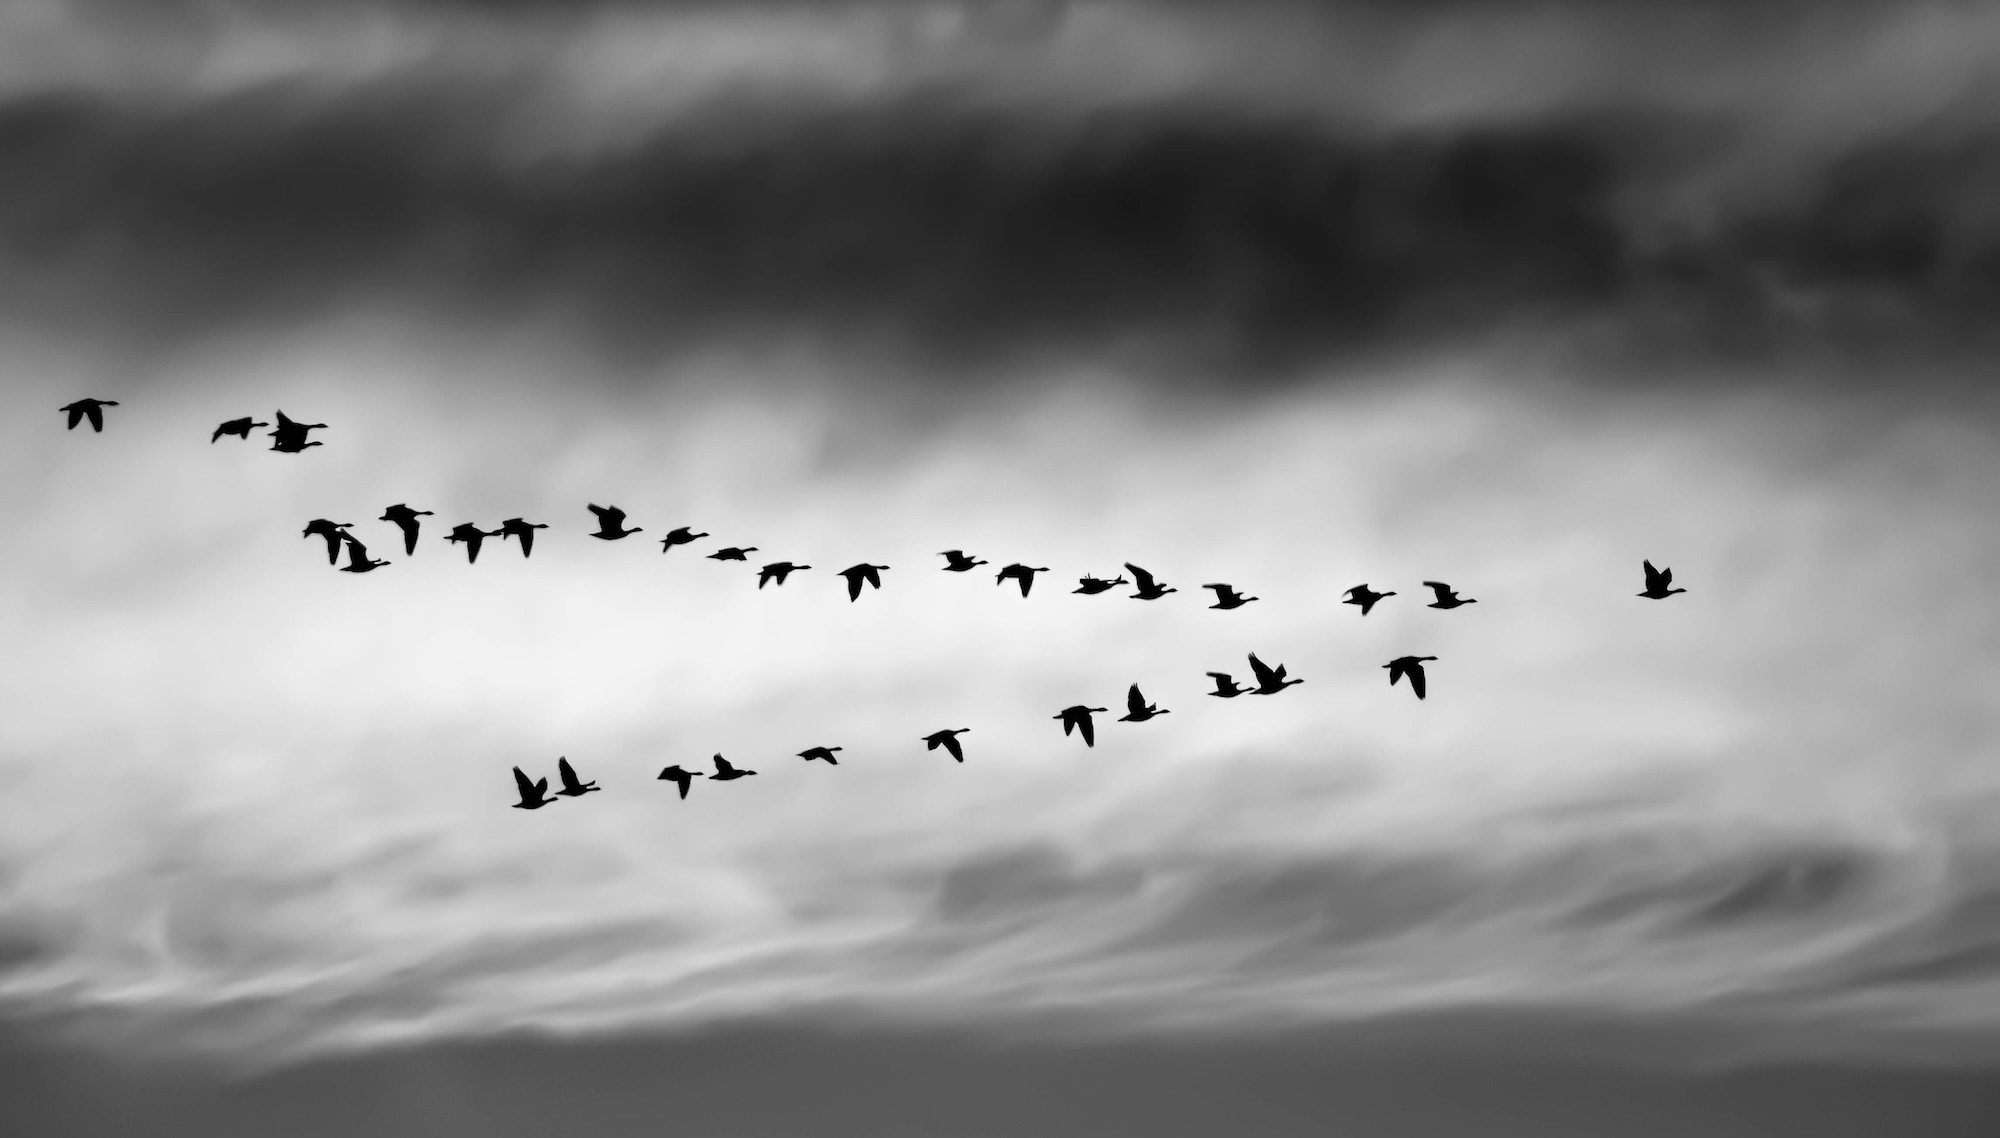 a flock of birds flying in a v-shaped formation